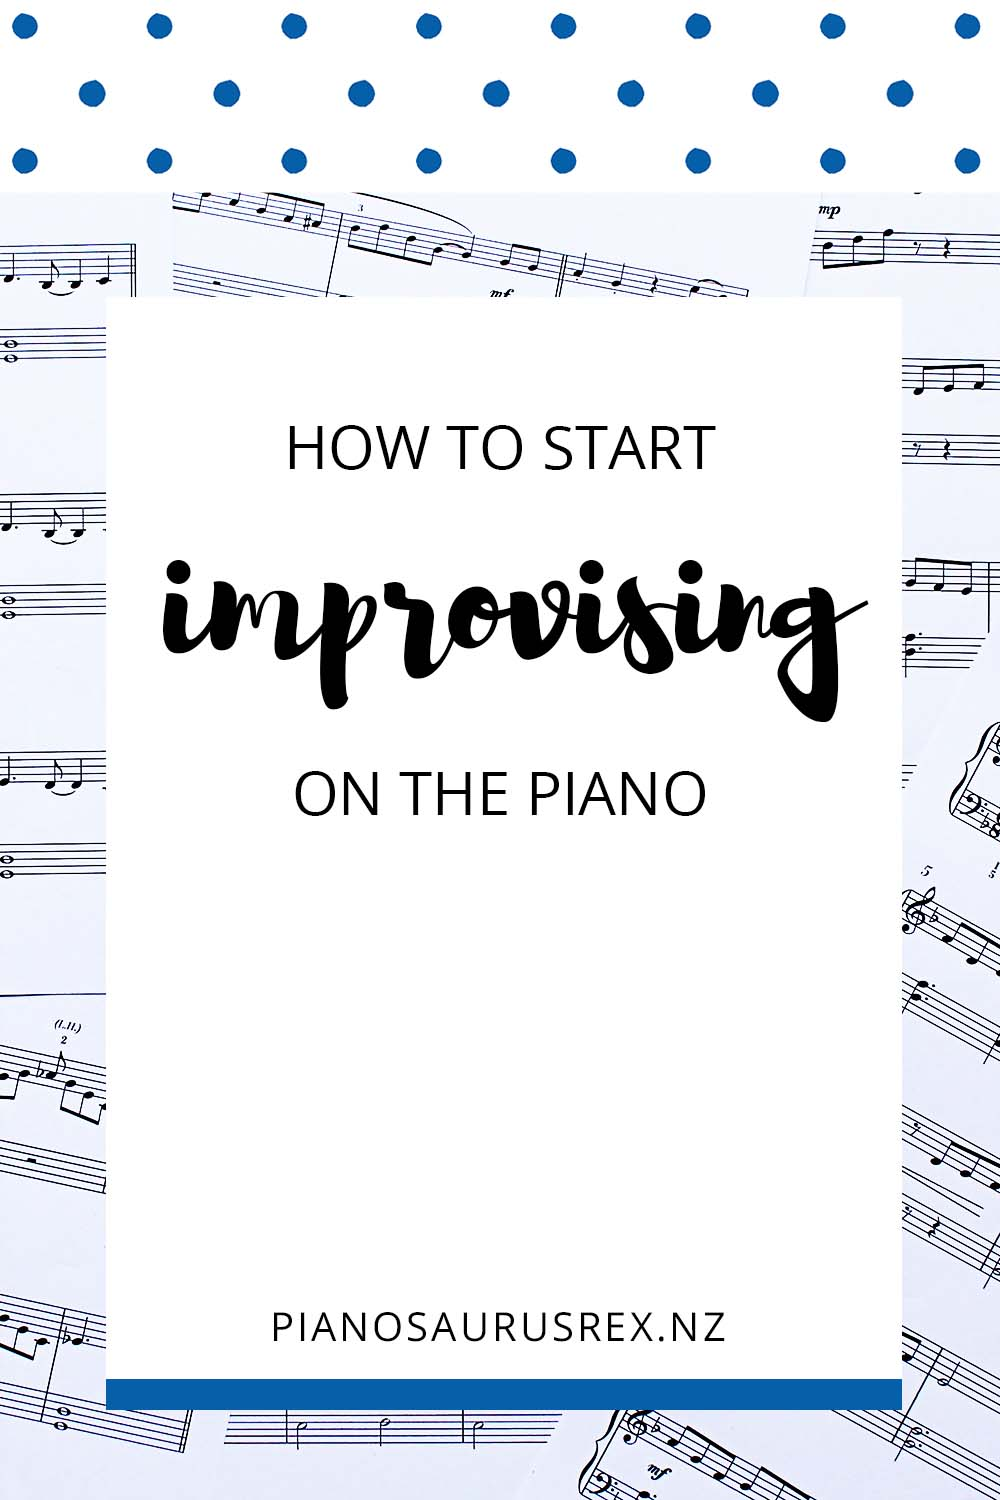 How To Start Improvising On The Piano